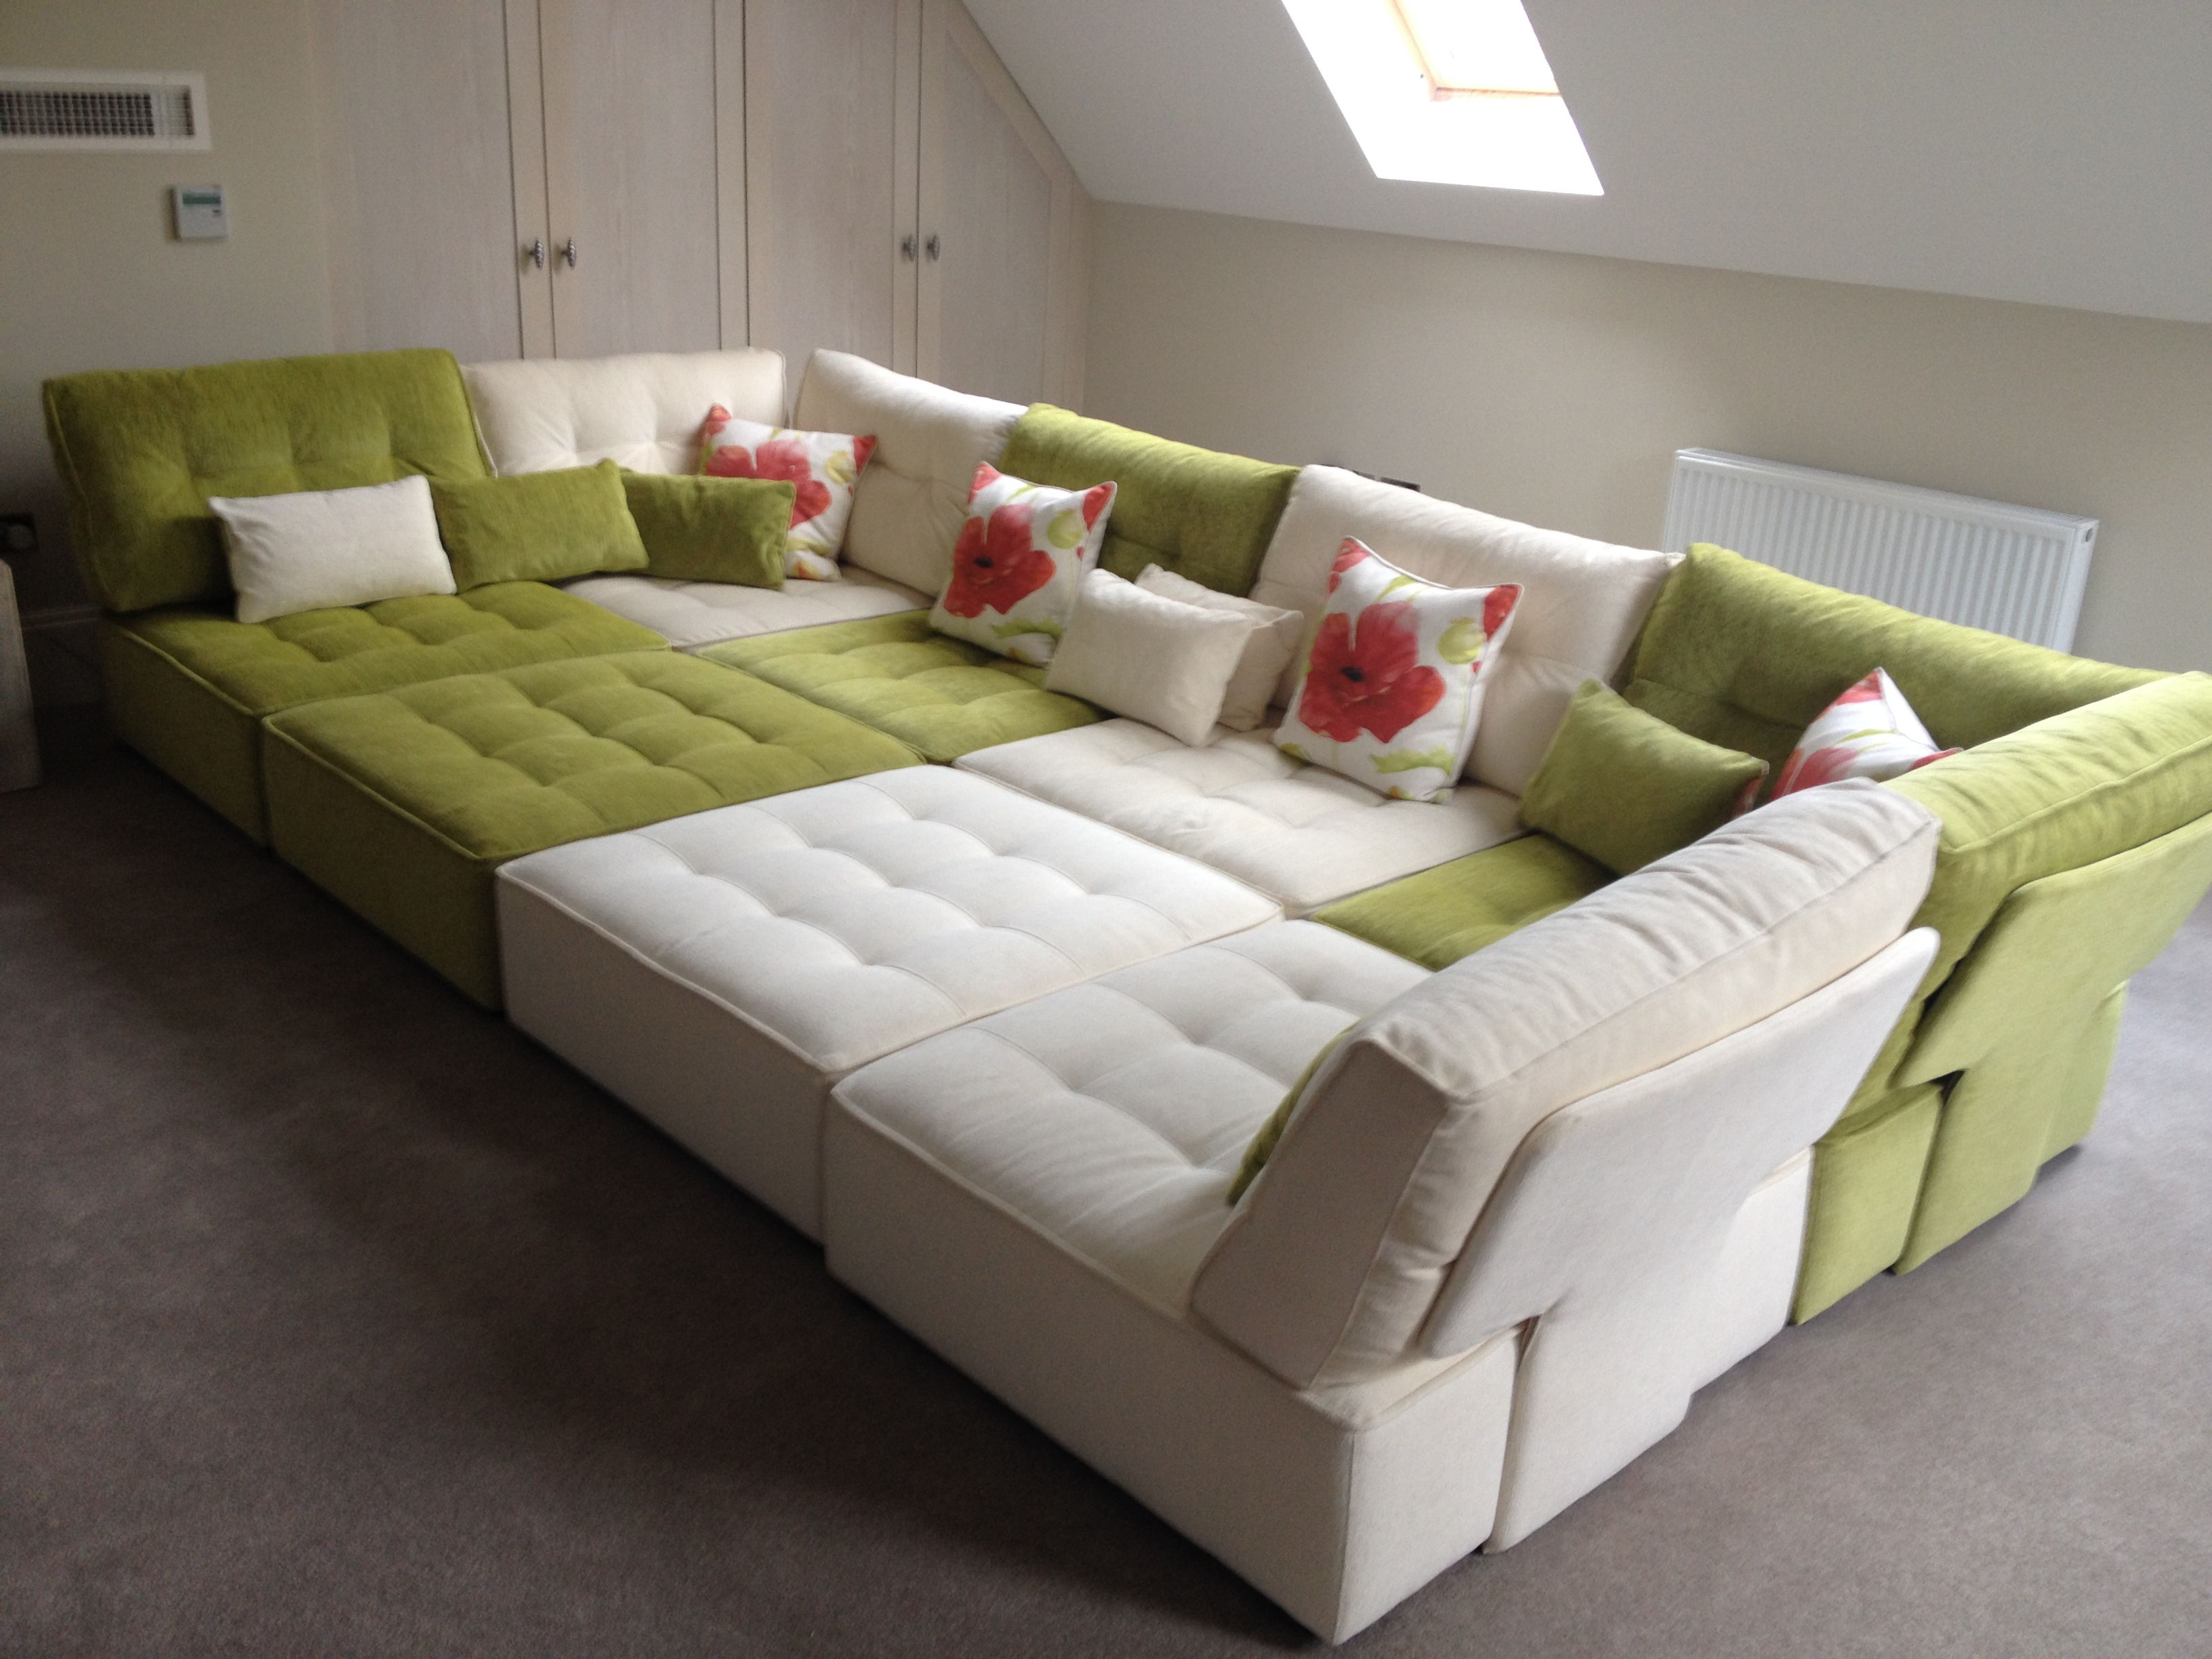 big chunky corner sofas queen sofa space cinema room how about these super fun too